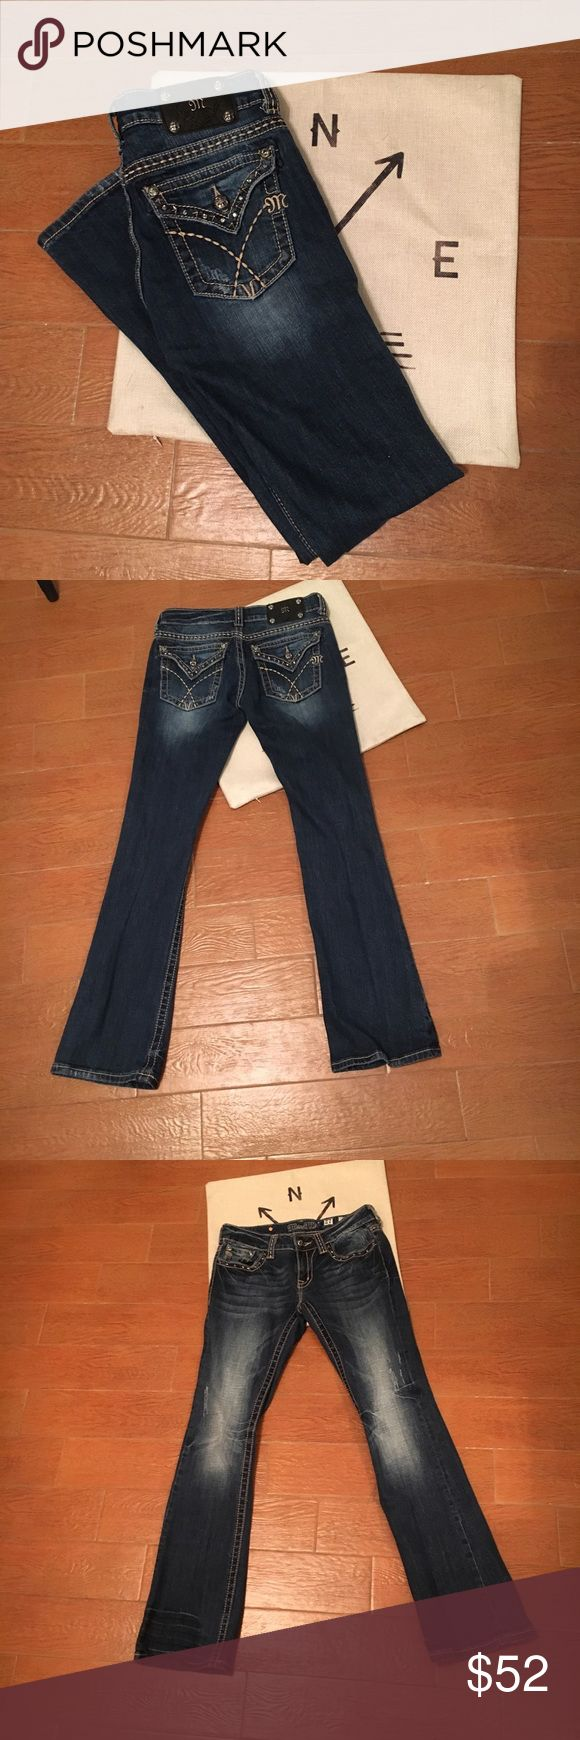 Miss Me Jeans Sz 27 Bootcut Adorable Miss Me Jeans! Size 27 inseam 32 Bootcut. Gently used only worn a few times. All gems are intact! Lightly distressed. Miss Me Pants Boot Cut & Flare